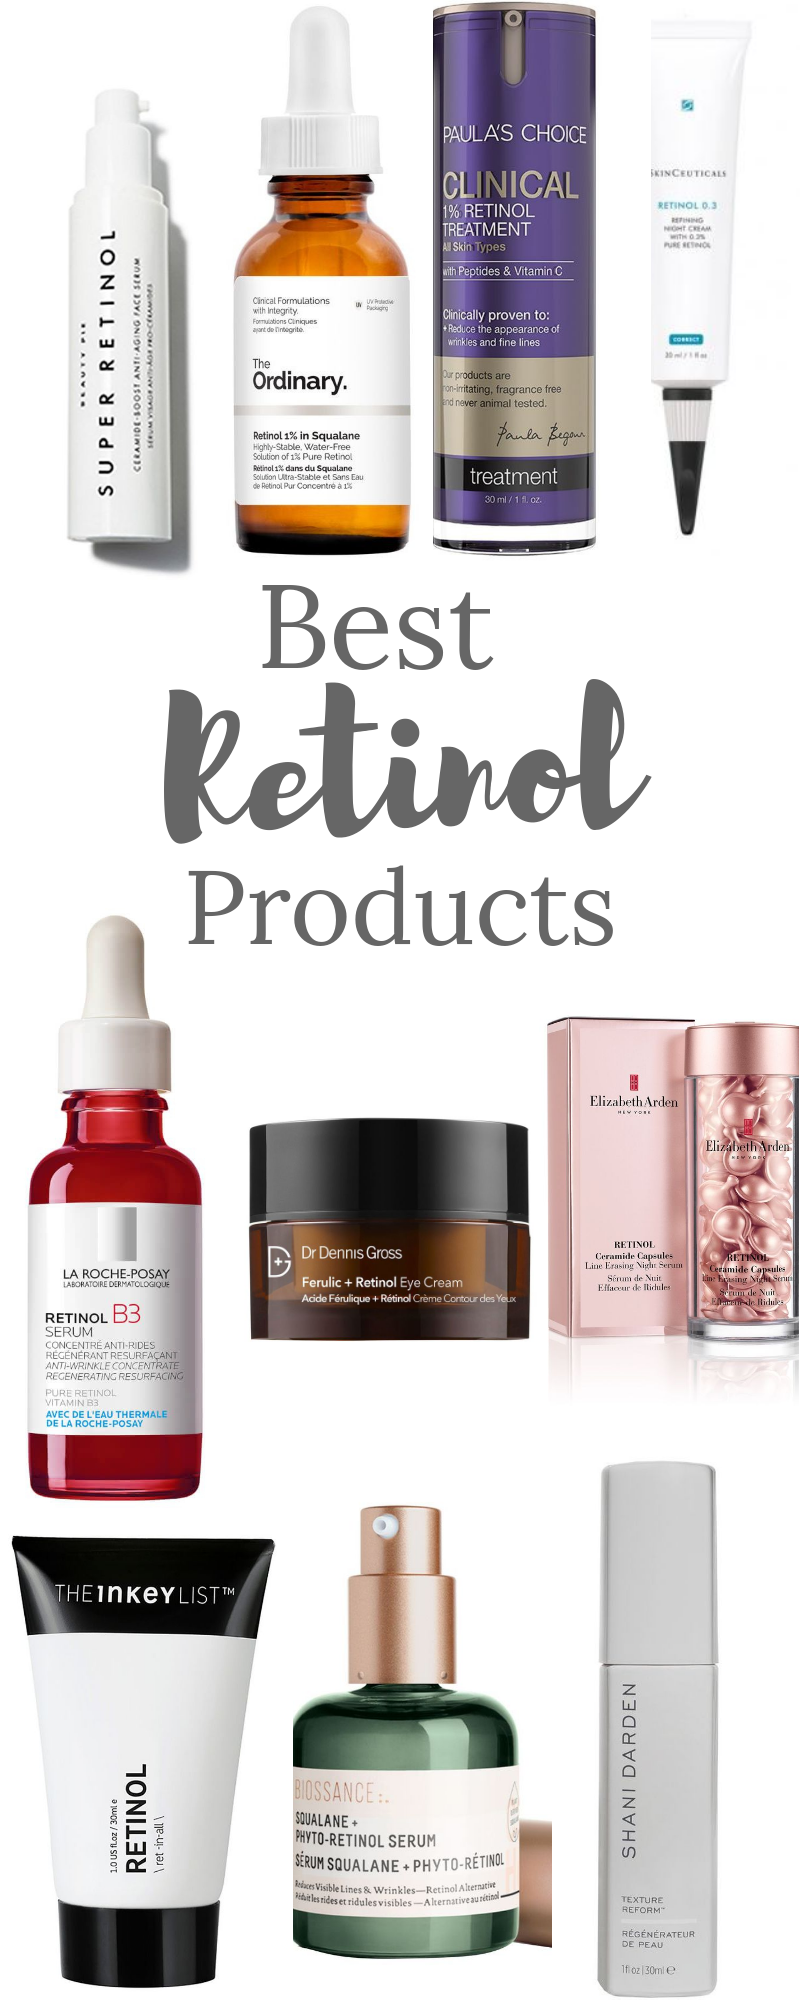 The Best Retinol Products For Aging Skin In 2020 Retinol Anti Aging Skin Products Skin Care